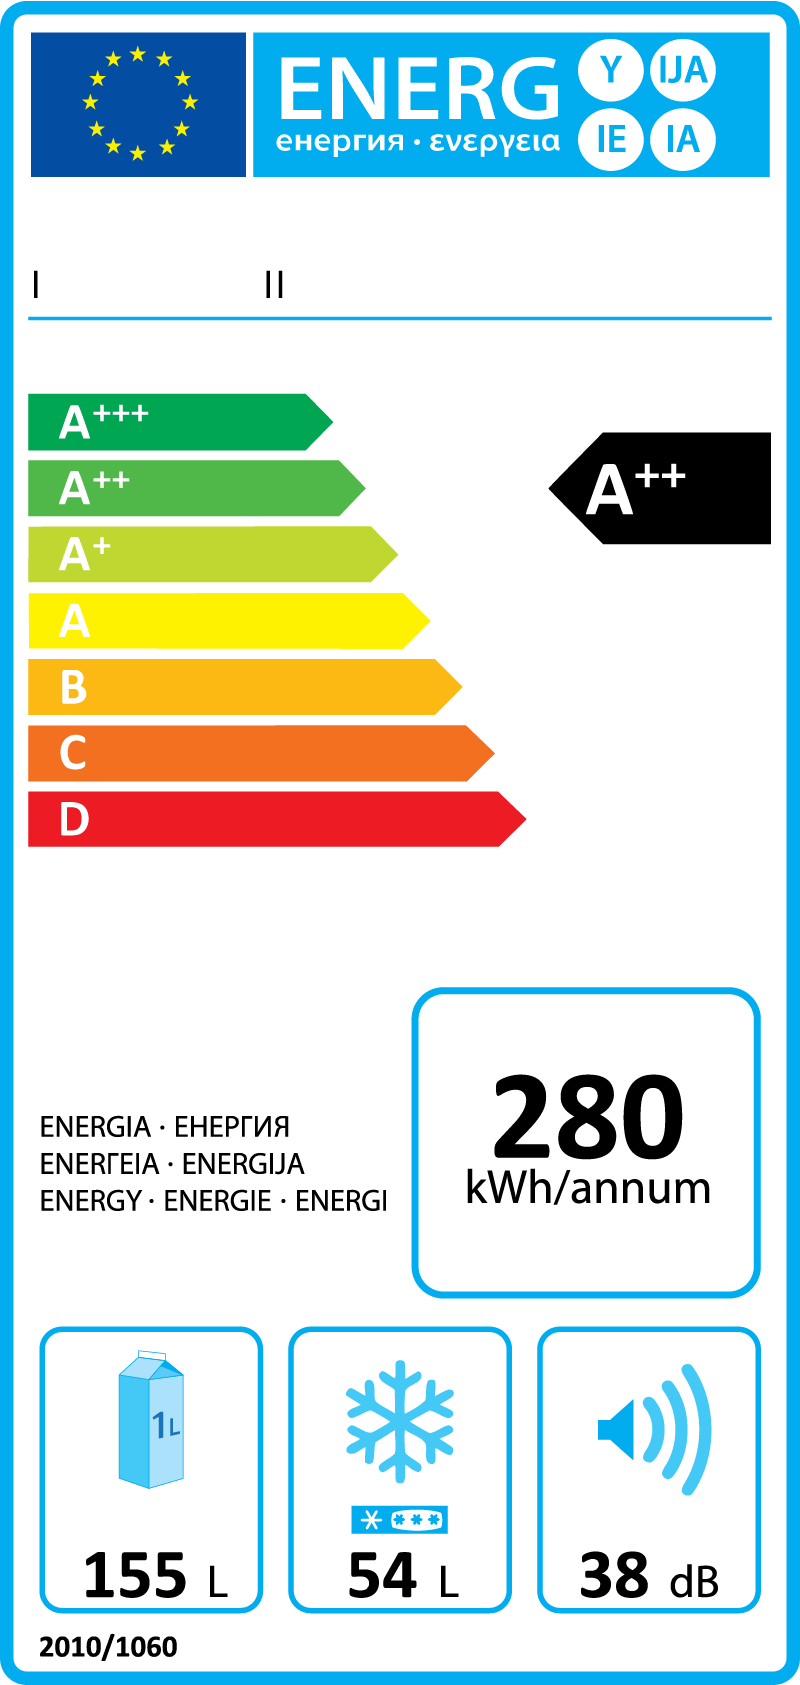 Example EU energy label for a refrigerator